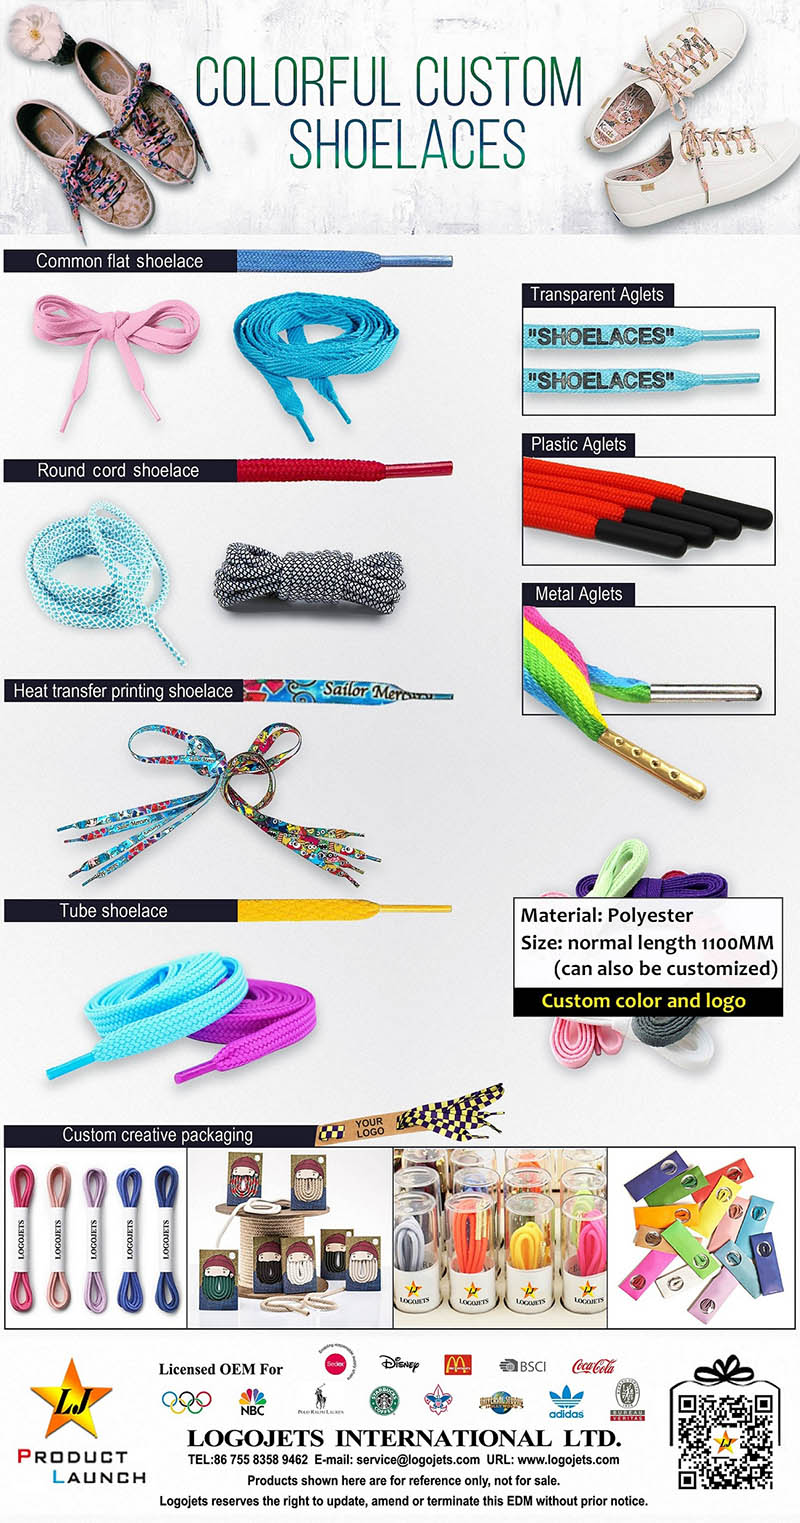 Colorful custom shoelaces